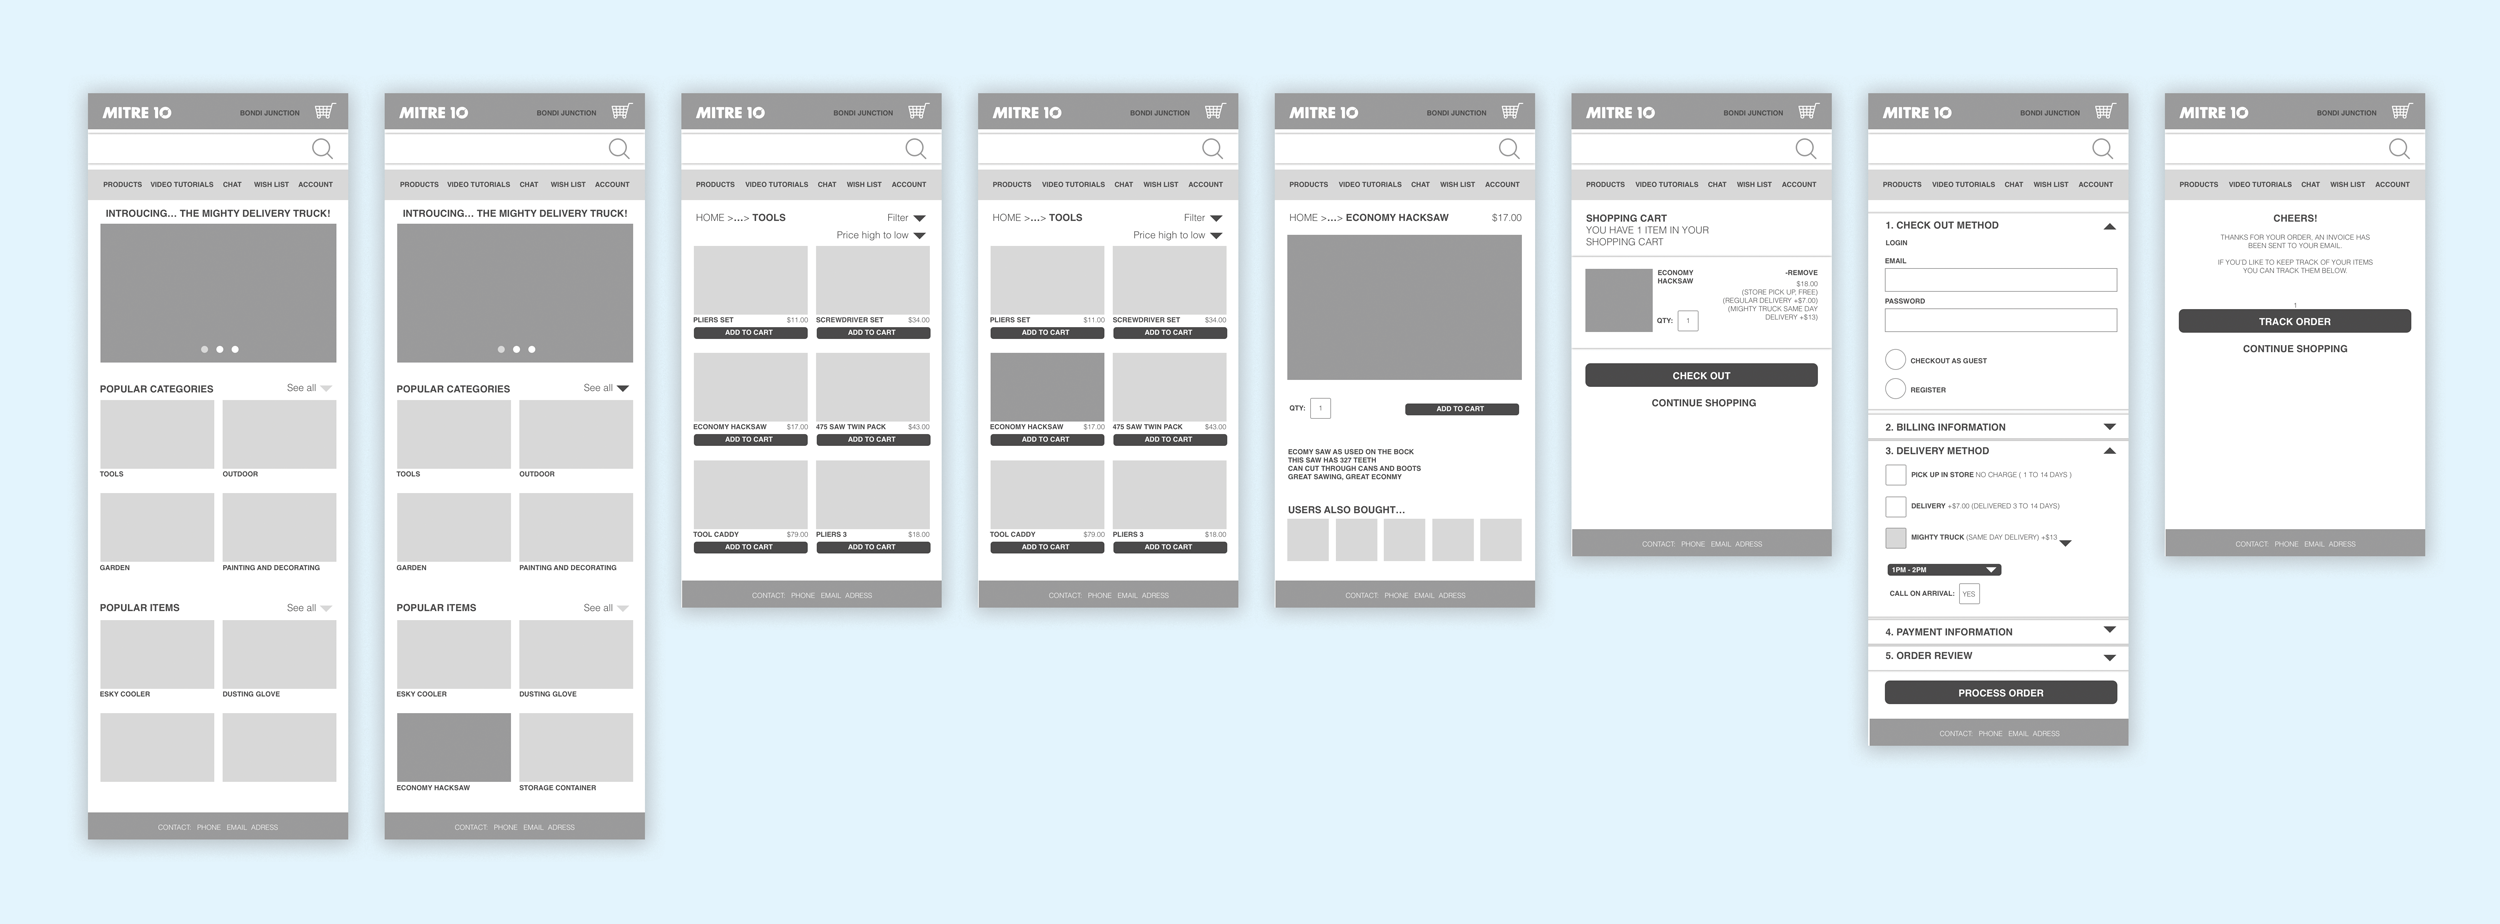 lo-fi-wireframes-2.png